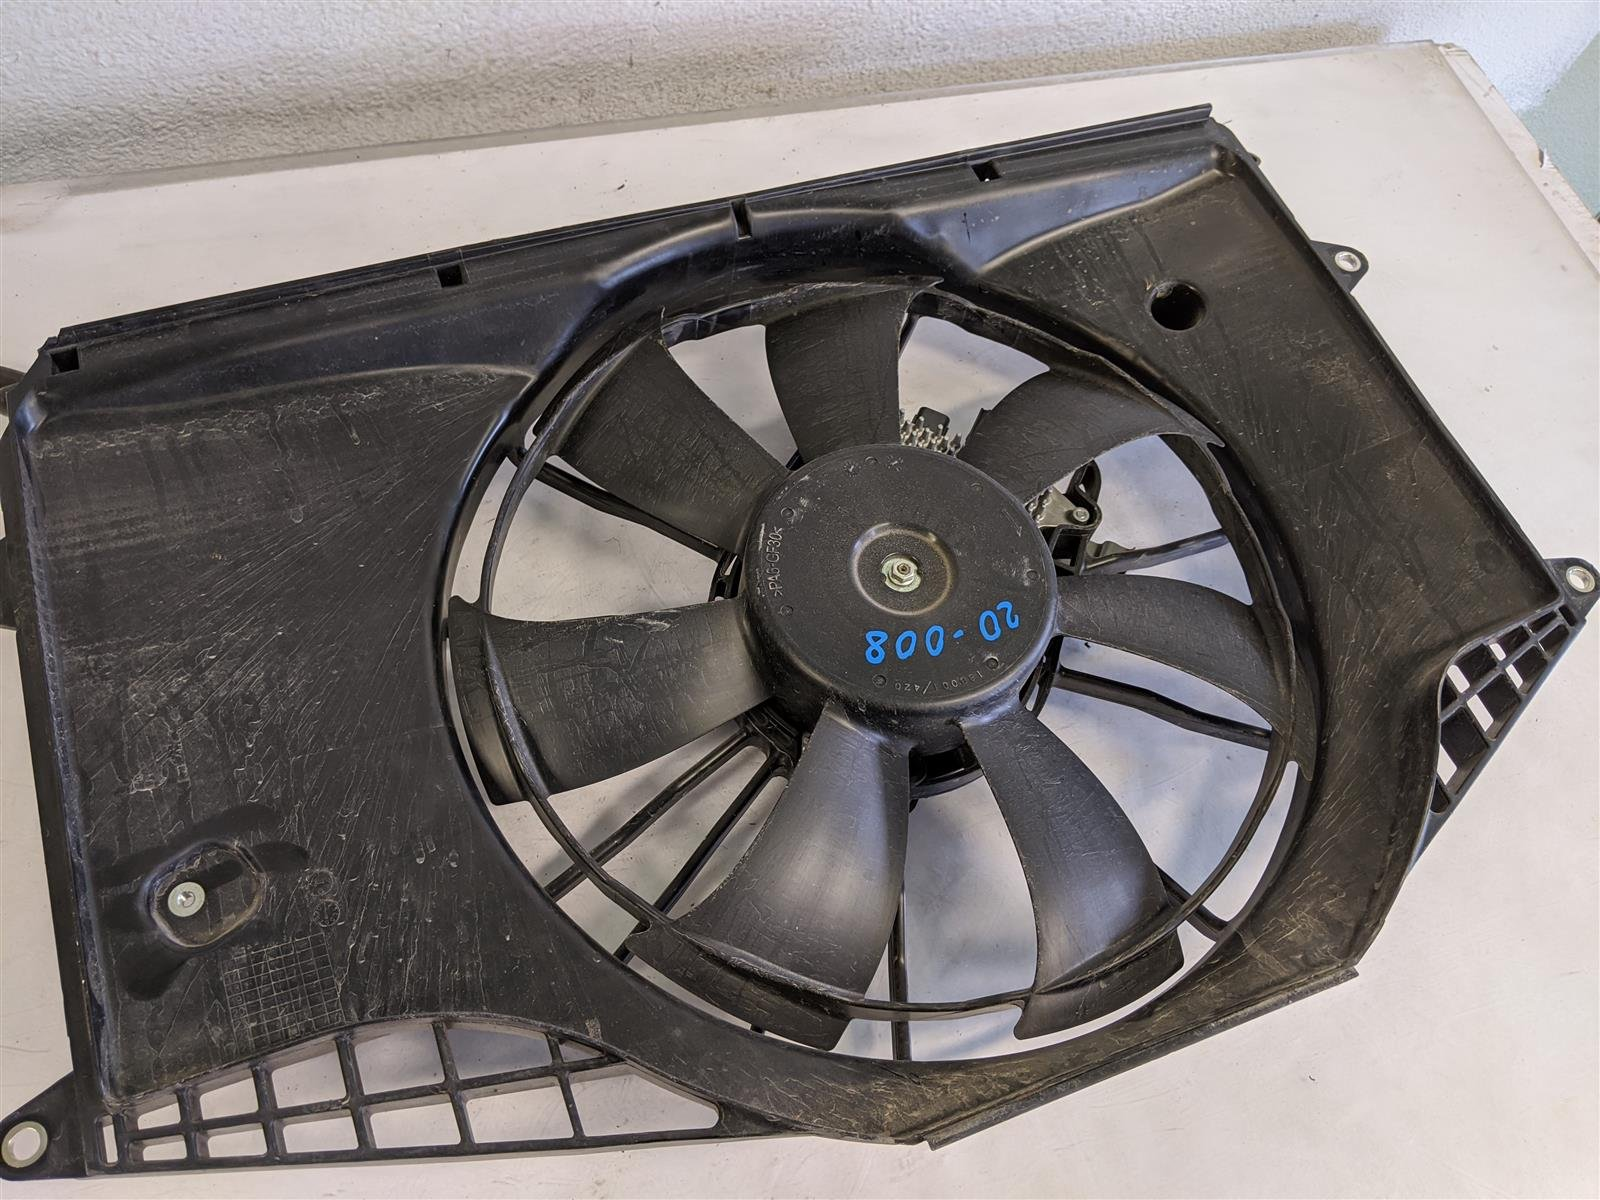 2018 Honda Civic 1.5l Radiator Fan Assembly Replacement